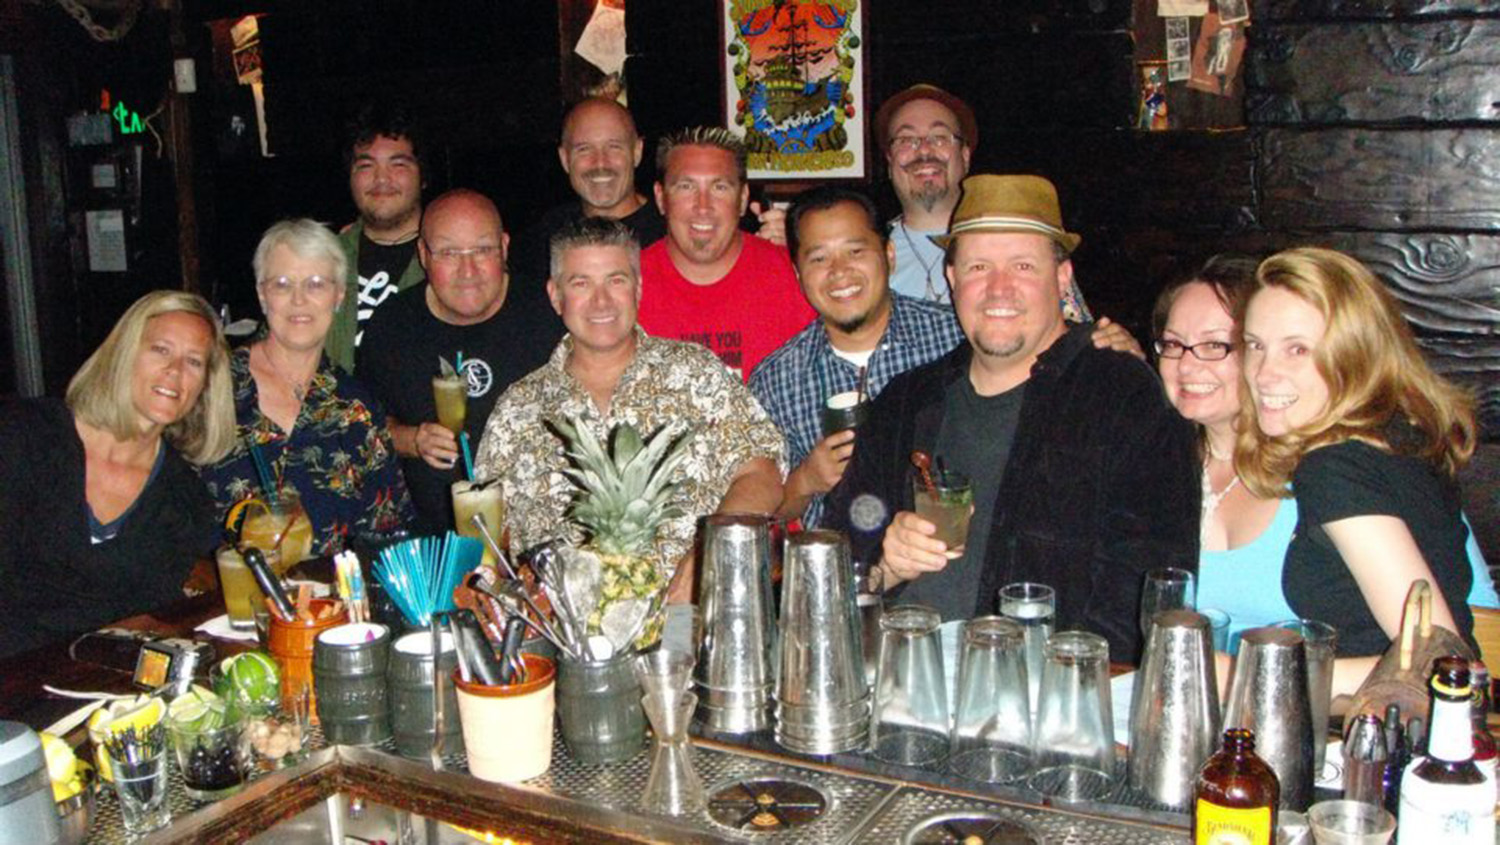 Tikiphile meetup at Smuggler's Cove, photo by Adrian Eustaquio